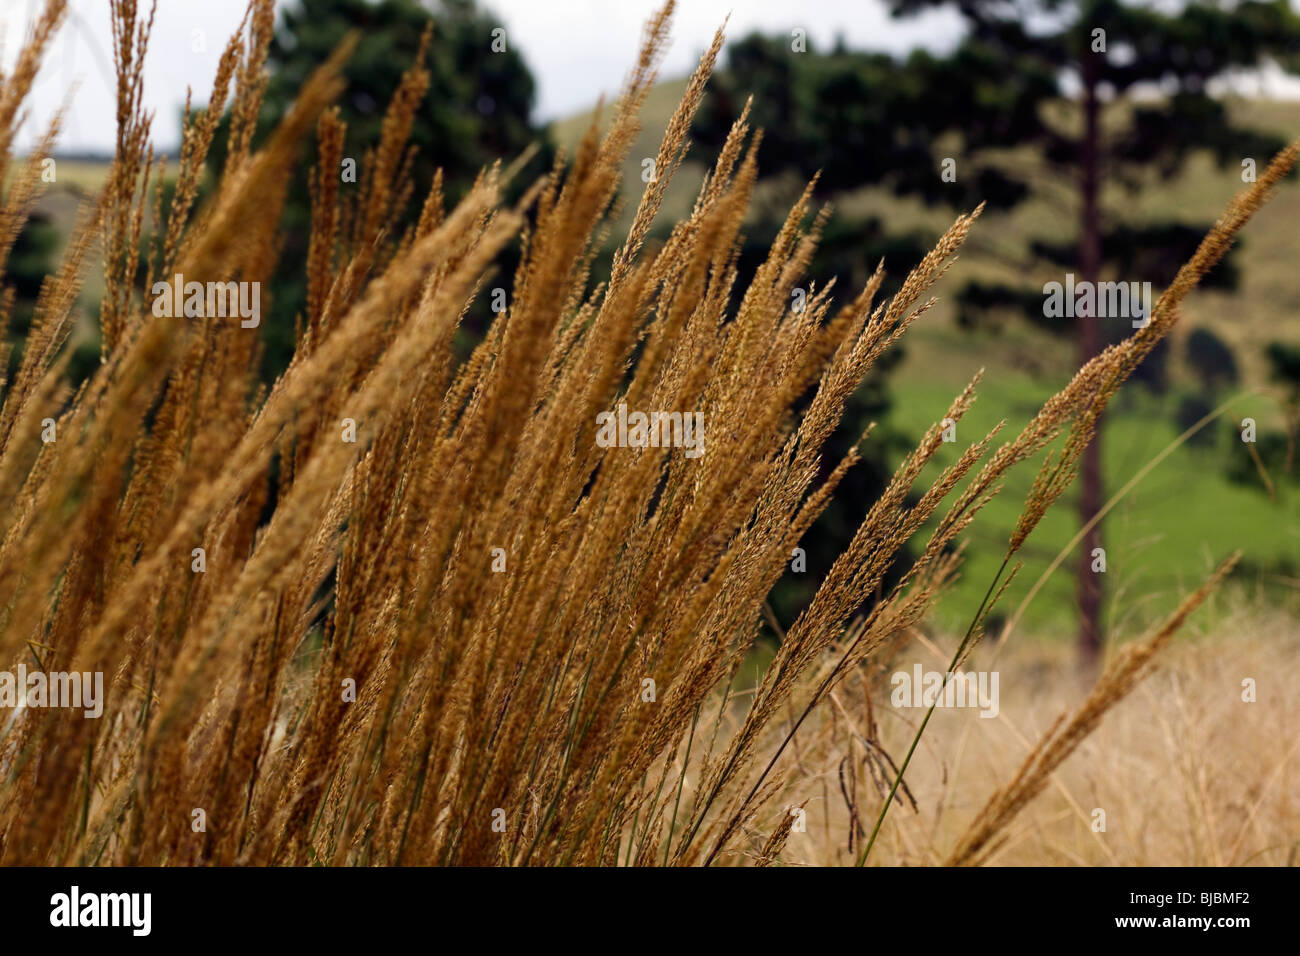 Stalks of golden grass swaying in a breeze. Midlands, Kwazulu Natal, South Africa. - Stock Image